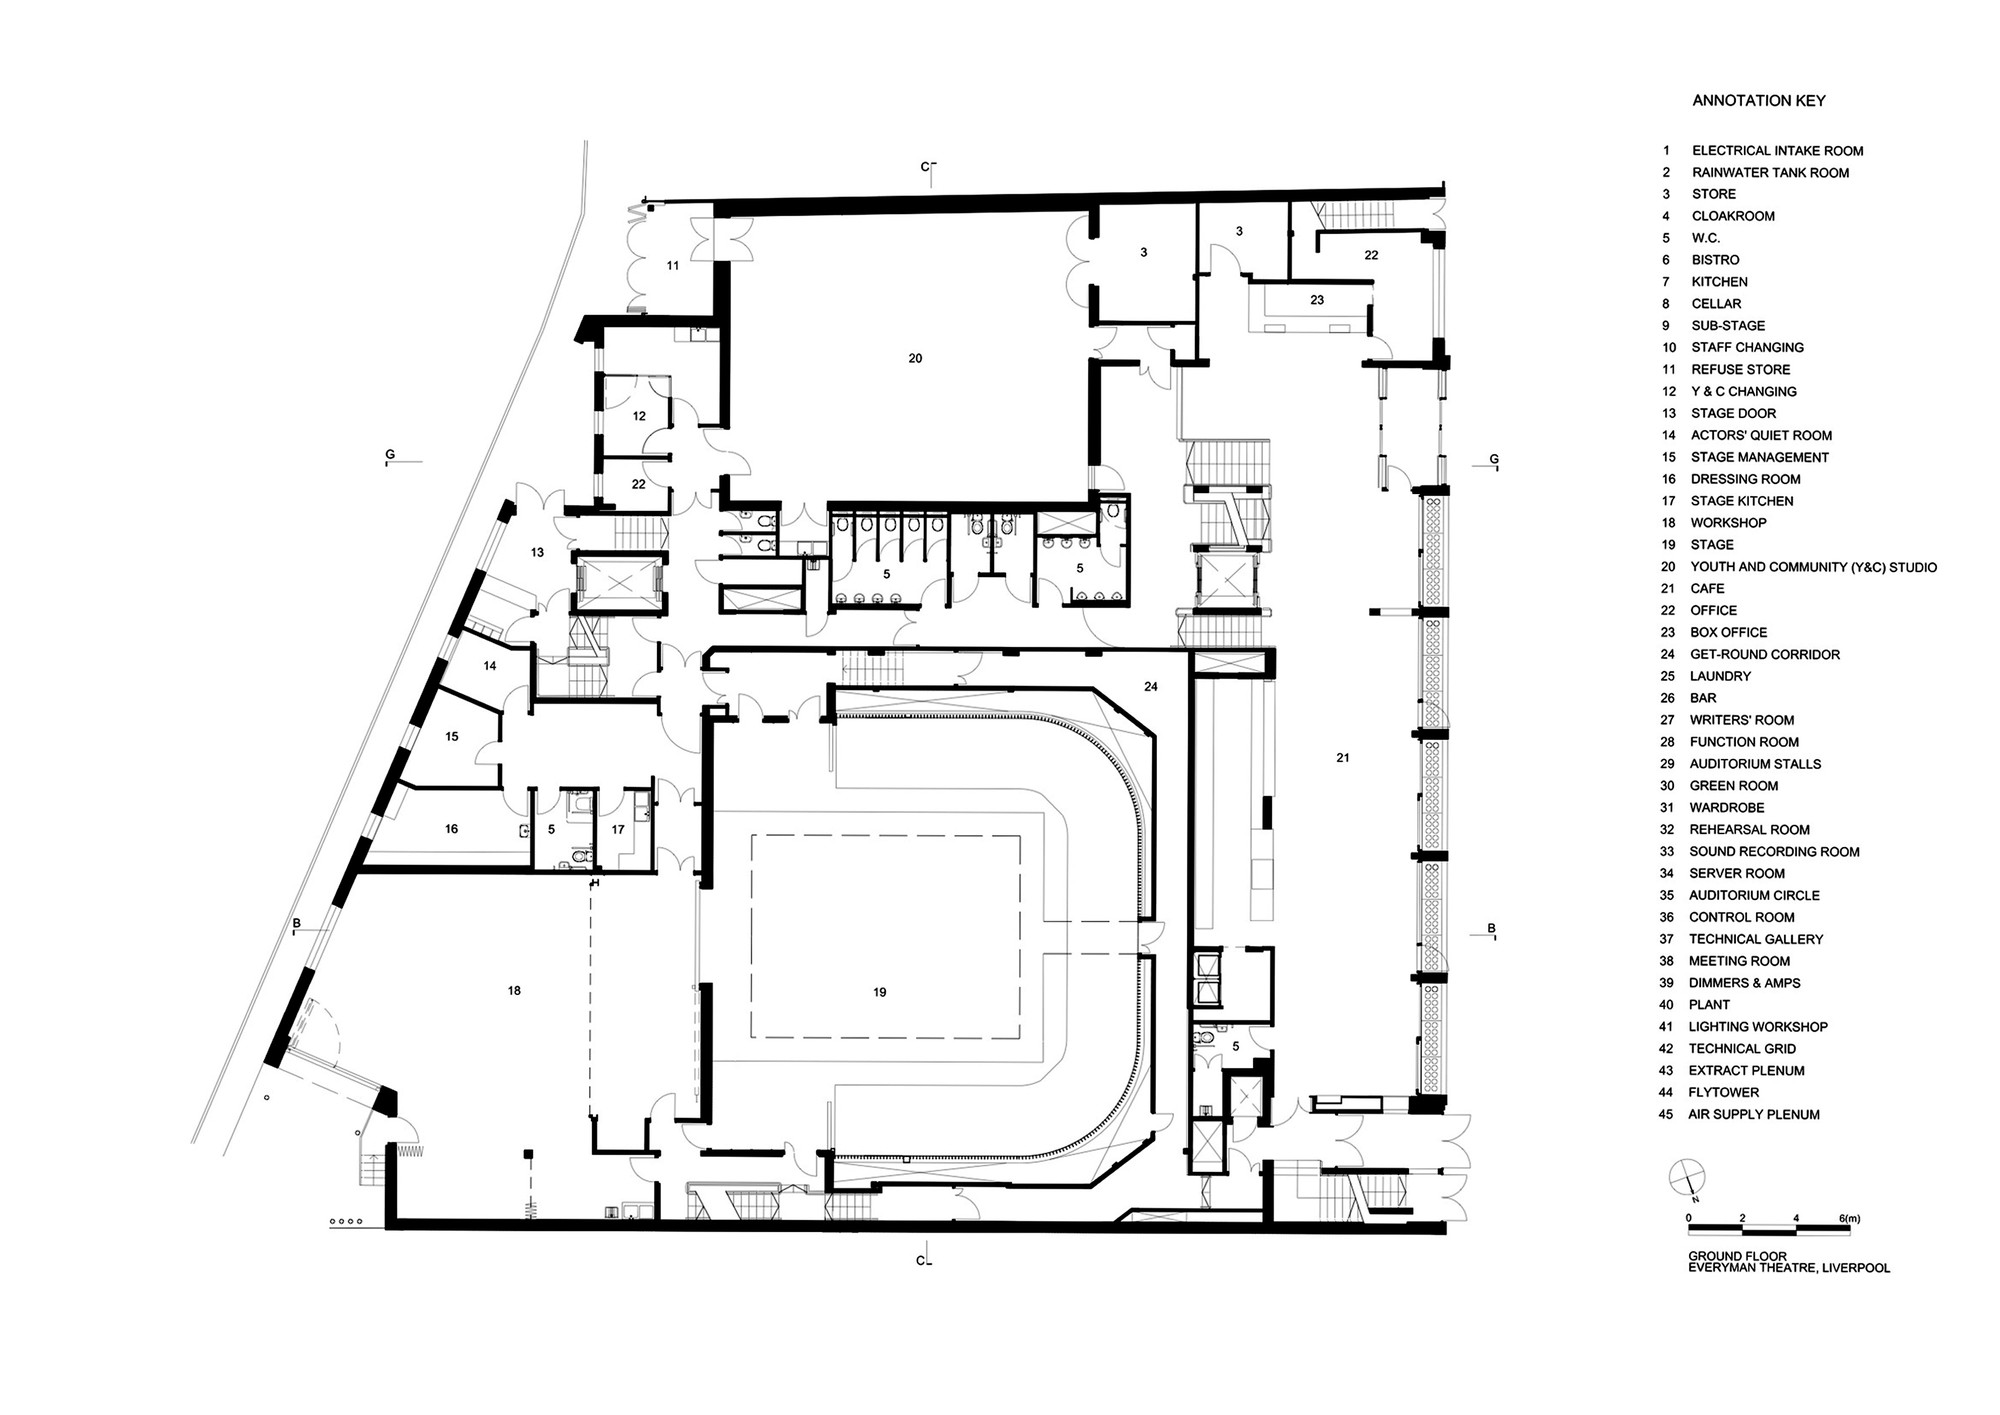 53bc8b76c07a8005ce00042f Kale Cafe Yamo Design Floor Plan likewise 429601251925856902 moreover 54dad4f2e58ececf160000c4 Auditorium Interior Section also 462393086716553024 additionally Np 6200 Stools And Dims. on seating for media room